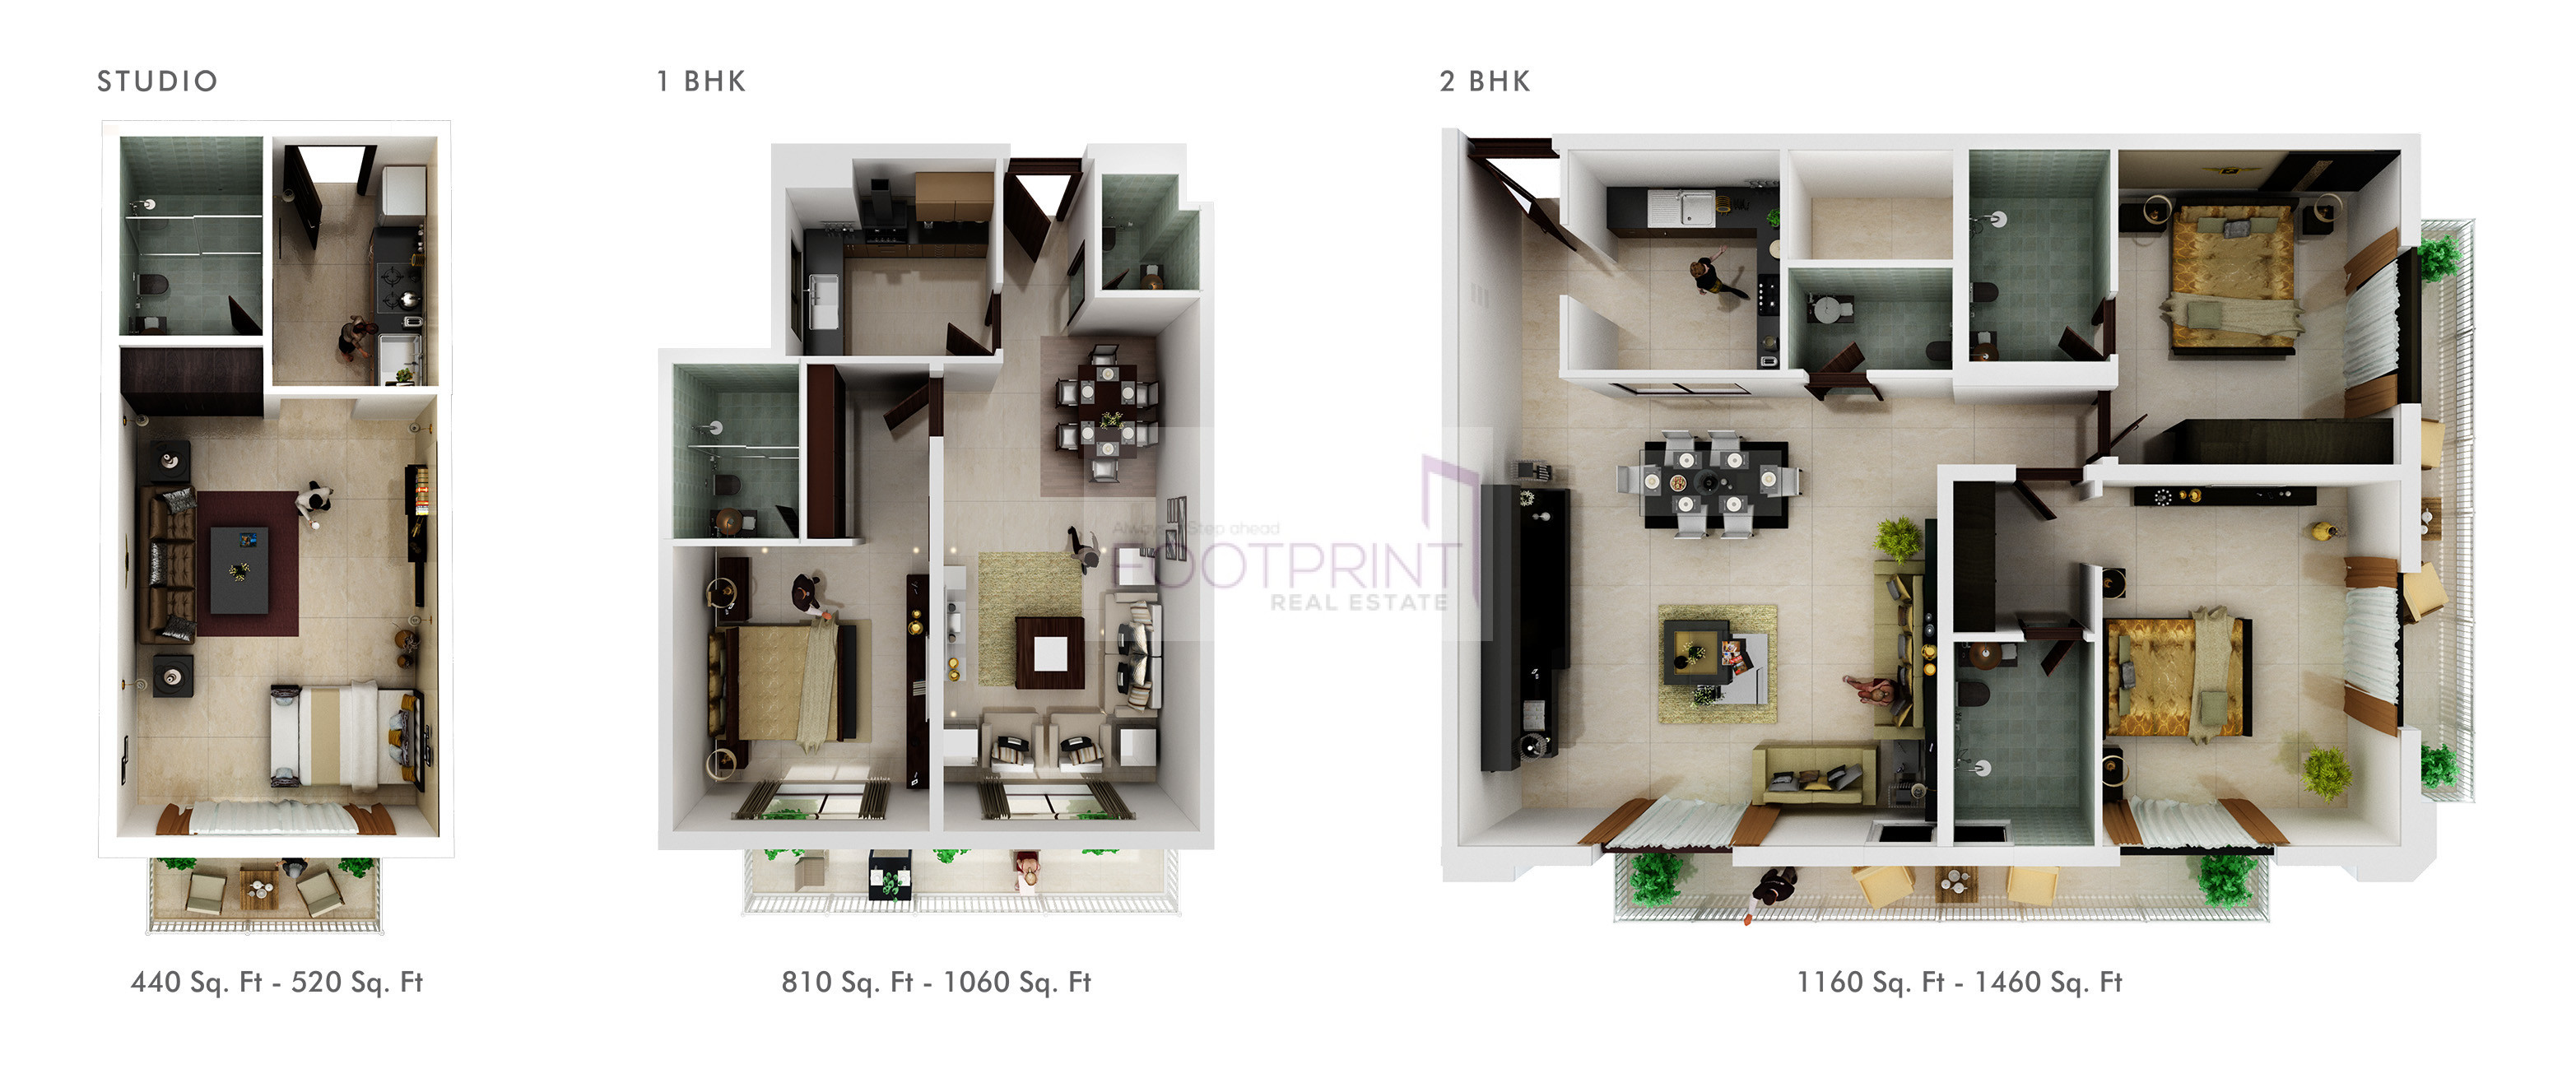 Be the first tenant for this luxury apt.